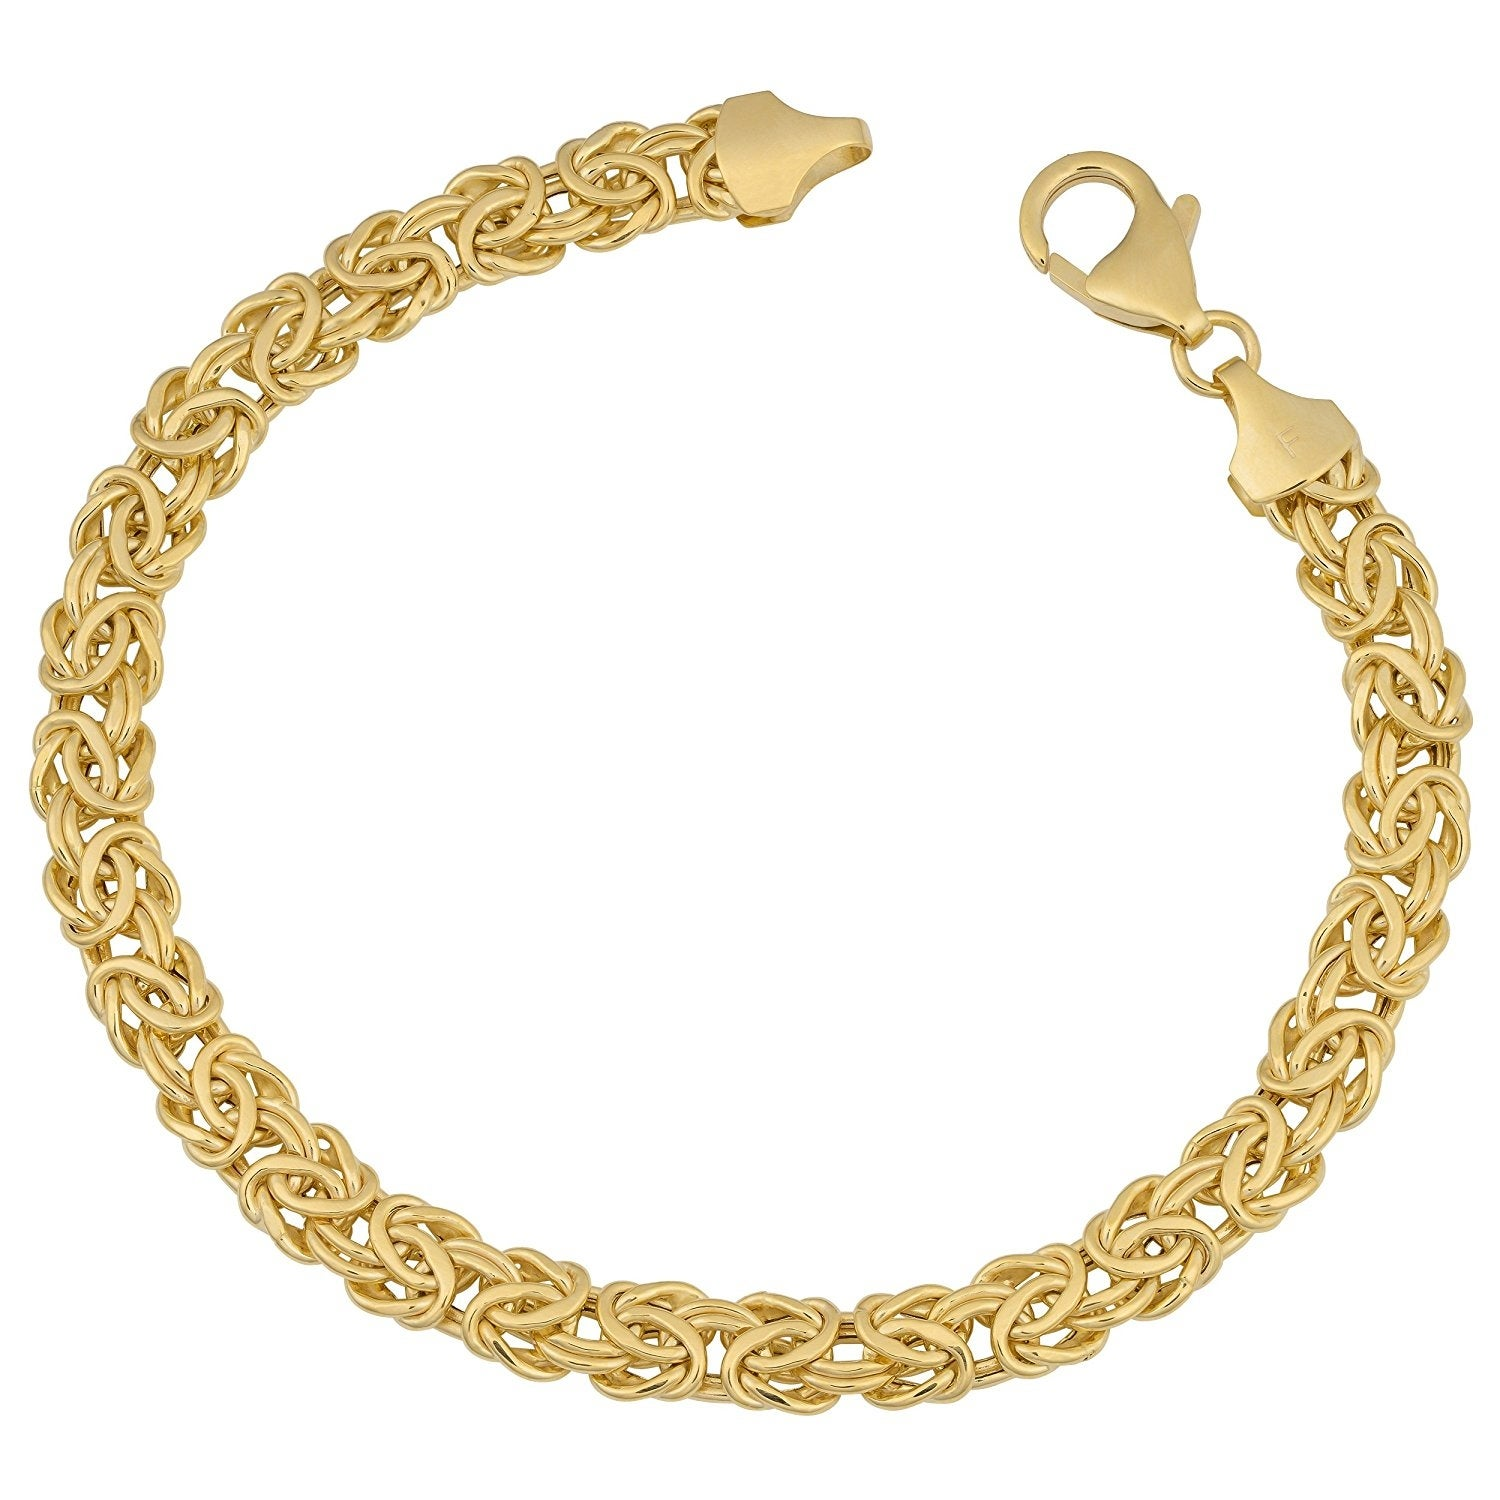 0d2908f7966e5 Buy Gold Bracelets Online at Overstock | Our Best Bracelets Deals